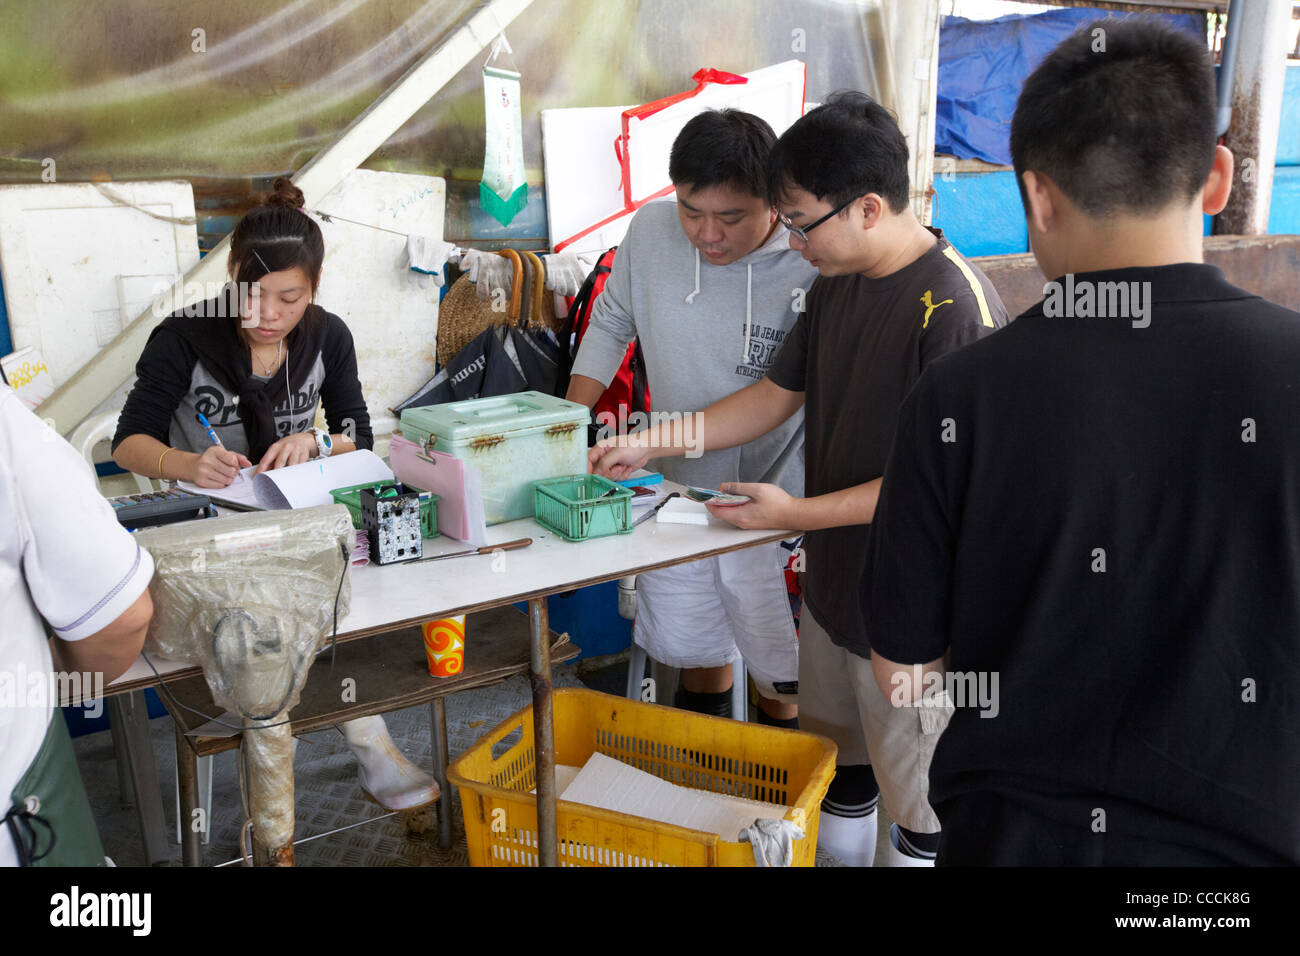 buyers and vendors settle up at the end of the selling day aberdeen wholesale fish and seafood market hong kong - Stock Image